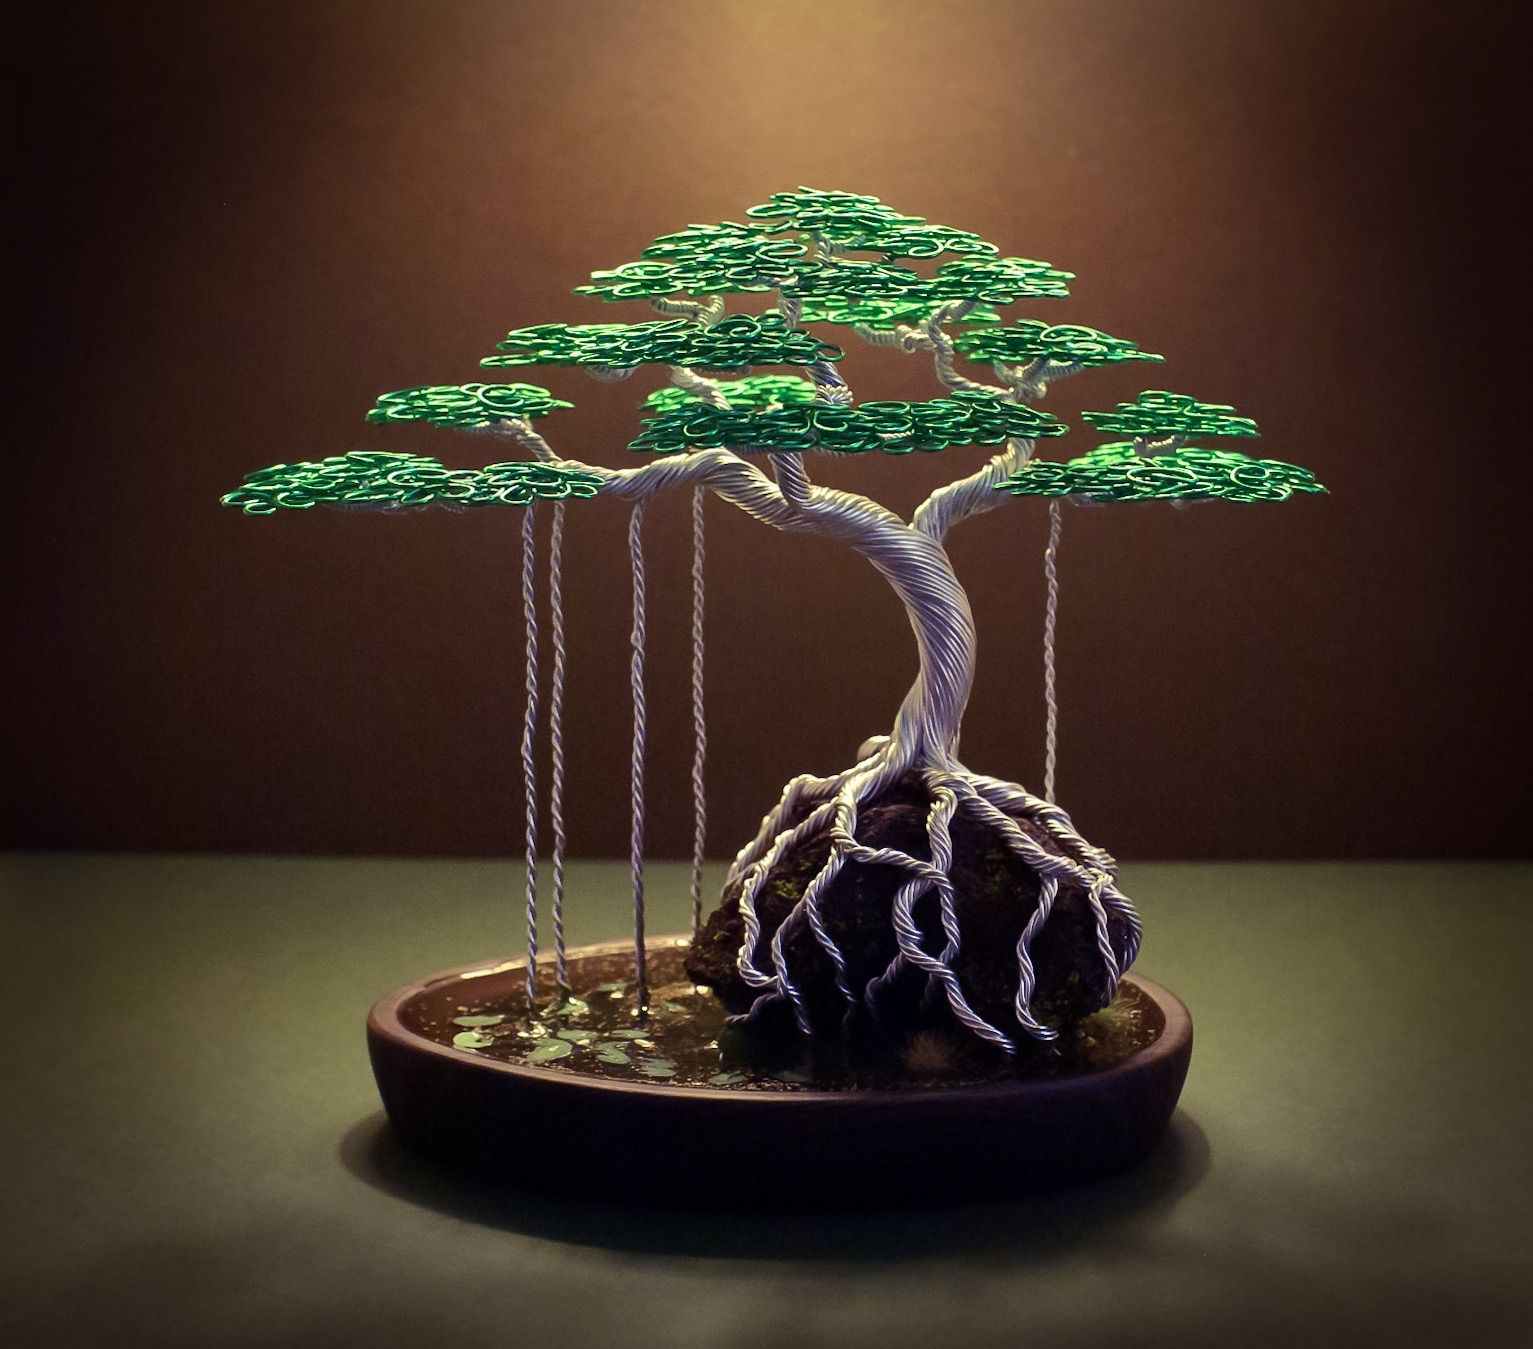 Wire Bonsai Wiring In Made Steve Bowen A Ficus Tree Imitation Water Scene 1533x1349